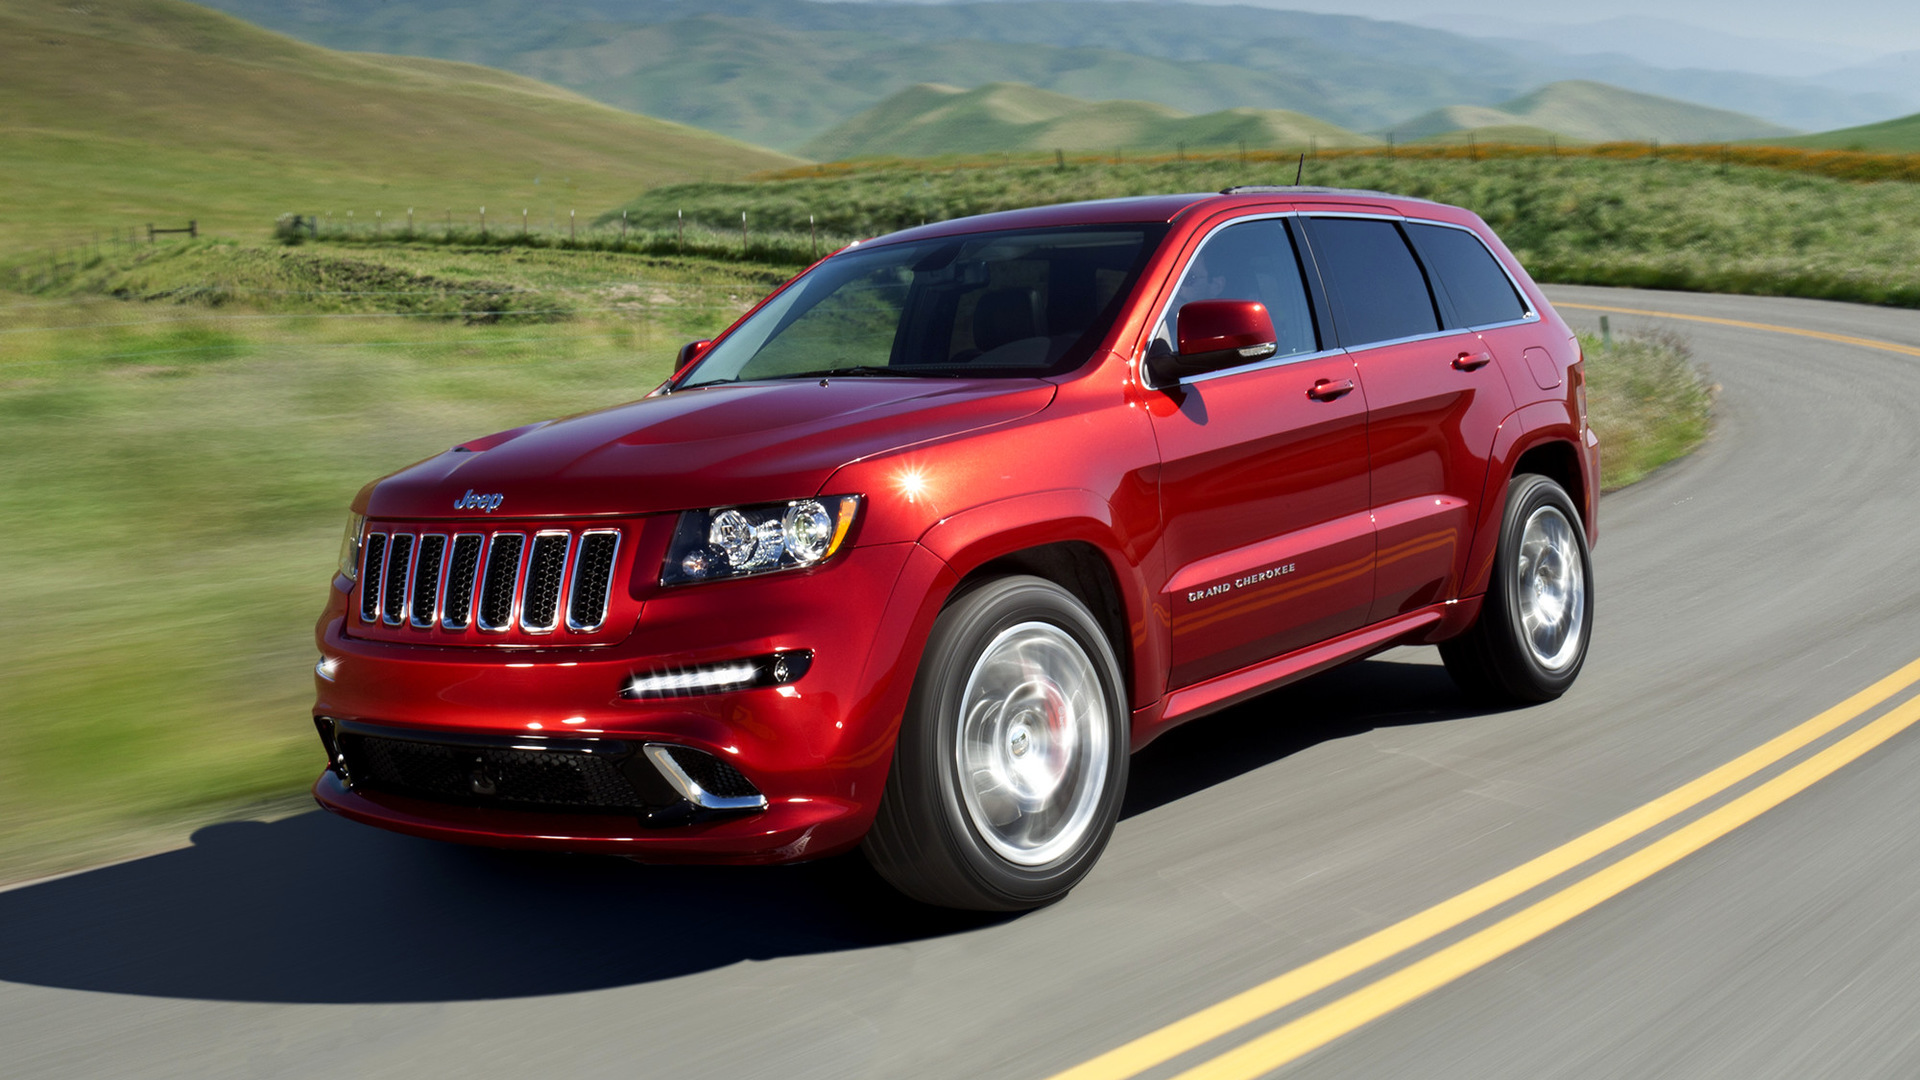 Jeep Srt8 2008 >> 2011 Jeep Grand Cherokee SRT8 - Wallpapers and HD Images | Car Pixel